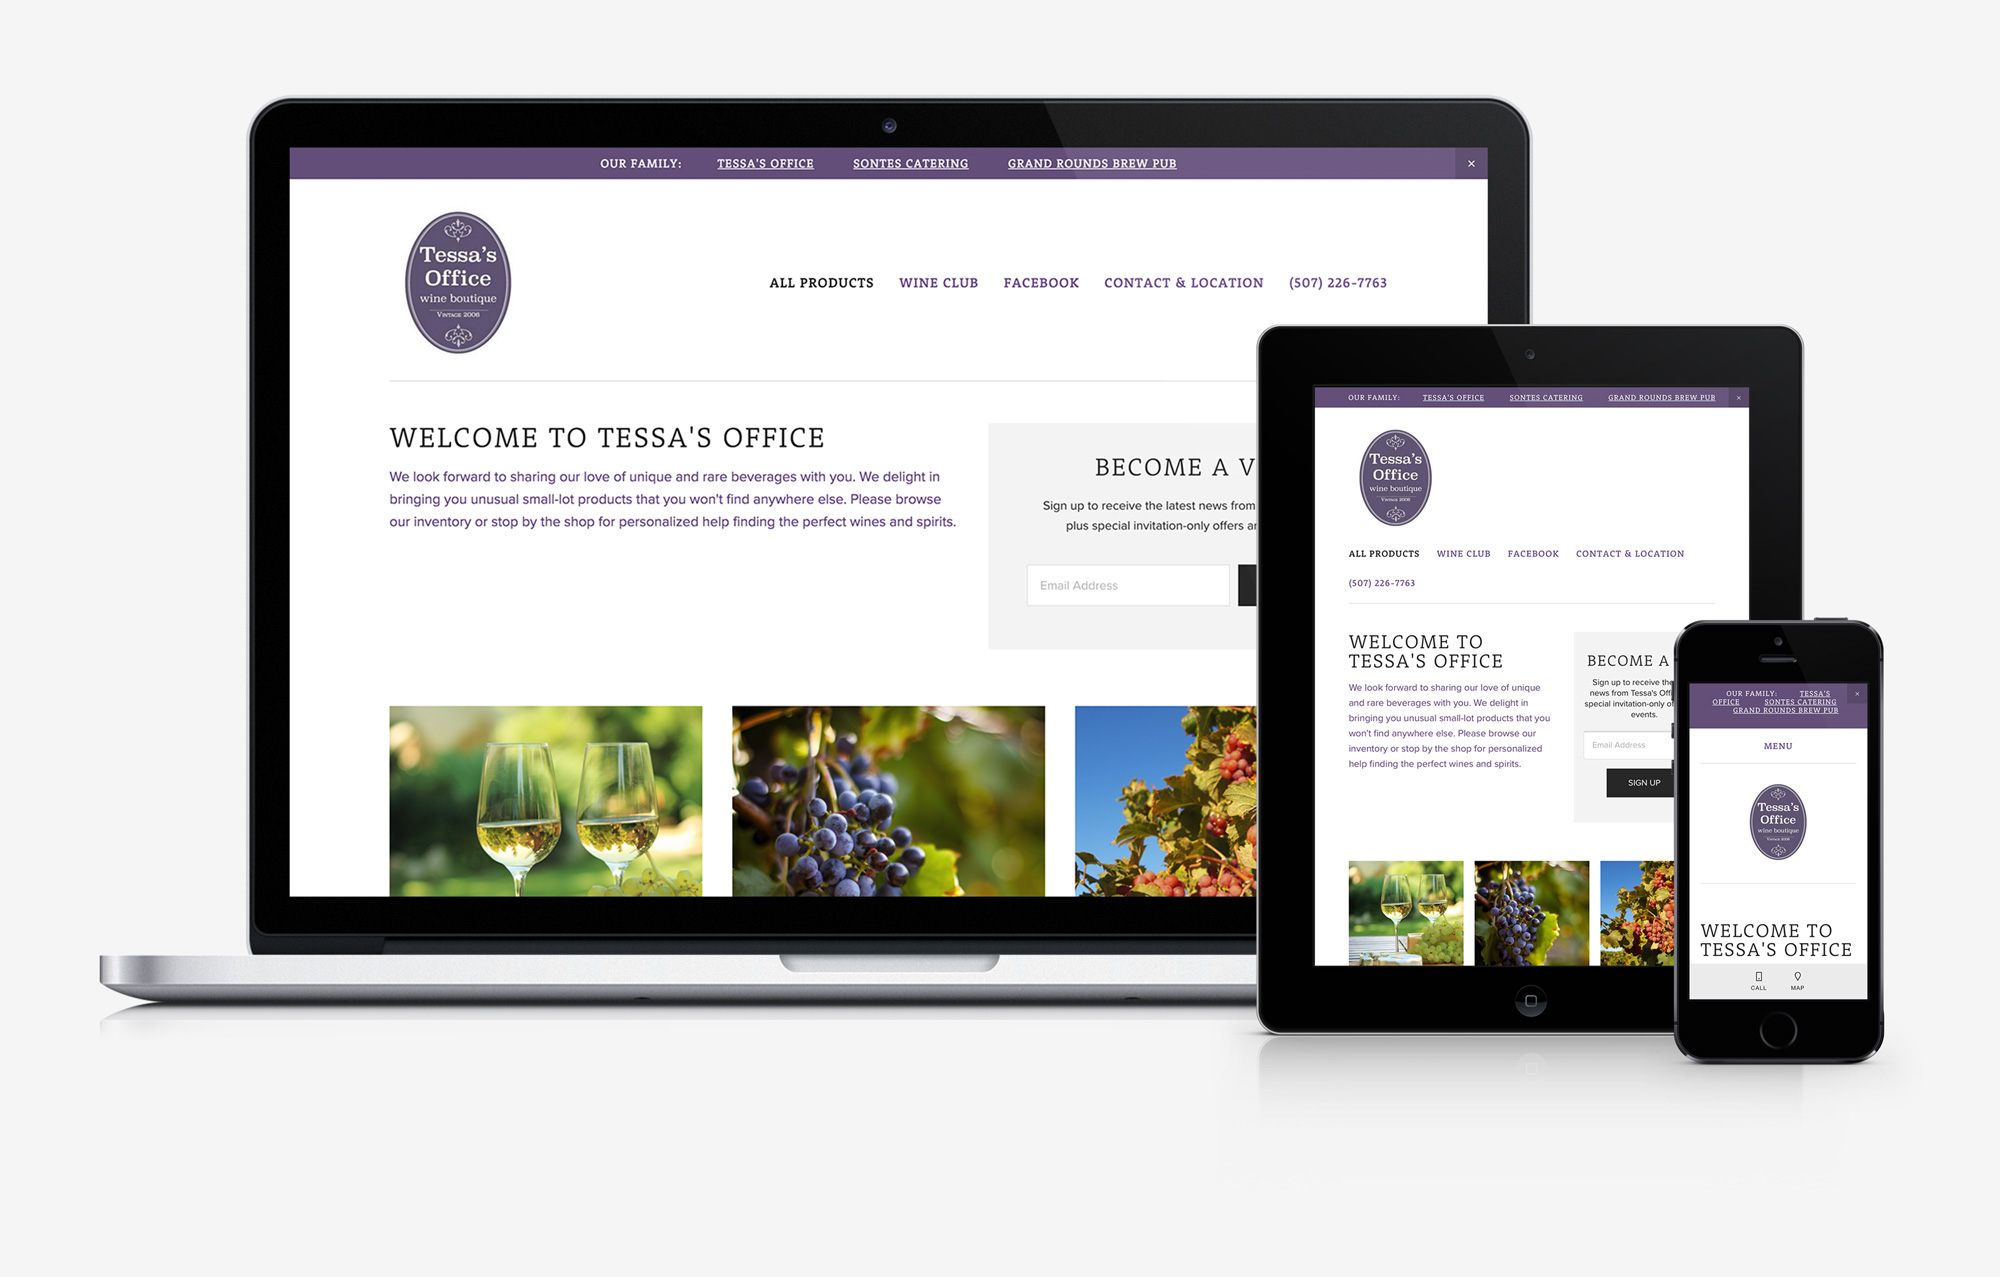 Tessa's Office responsive website design mockup